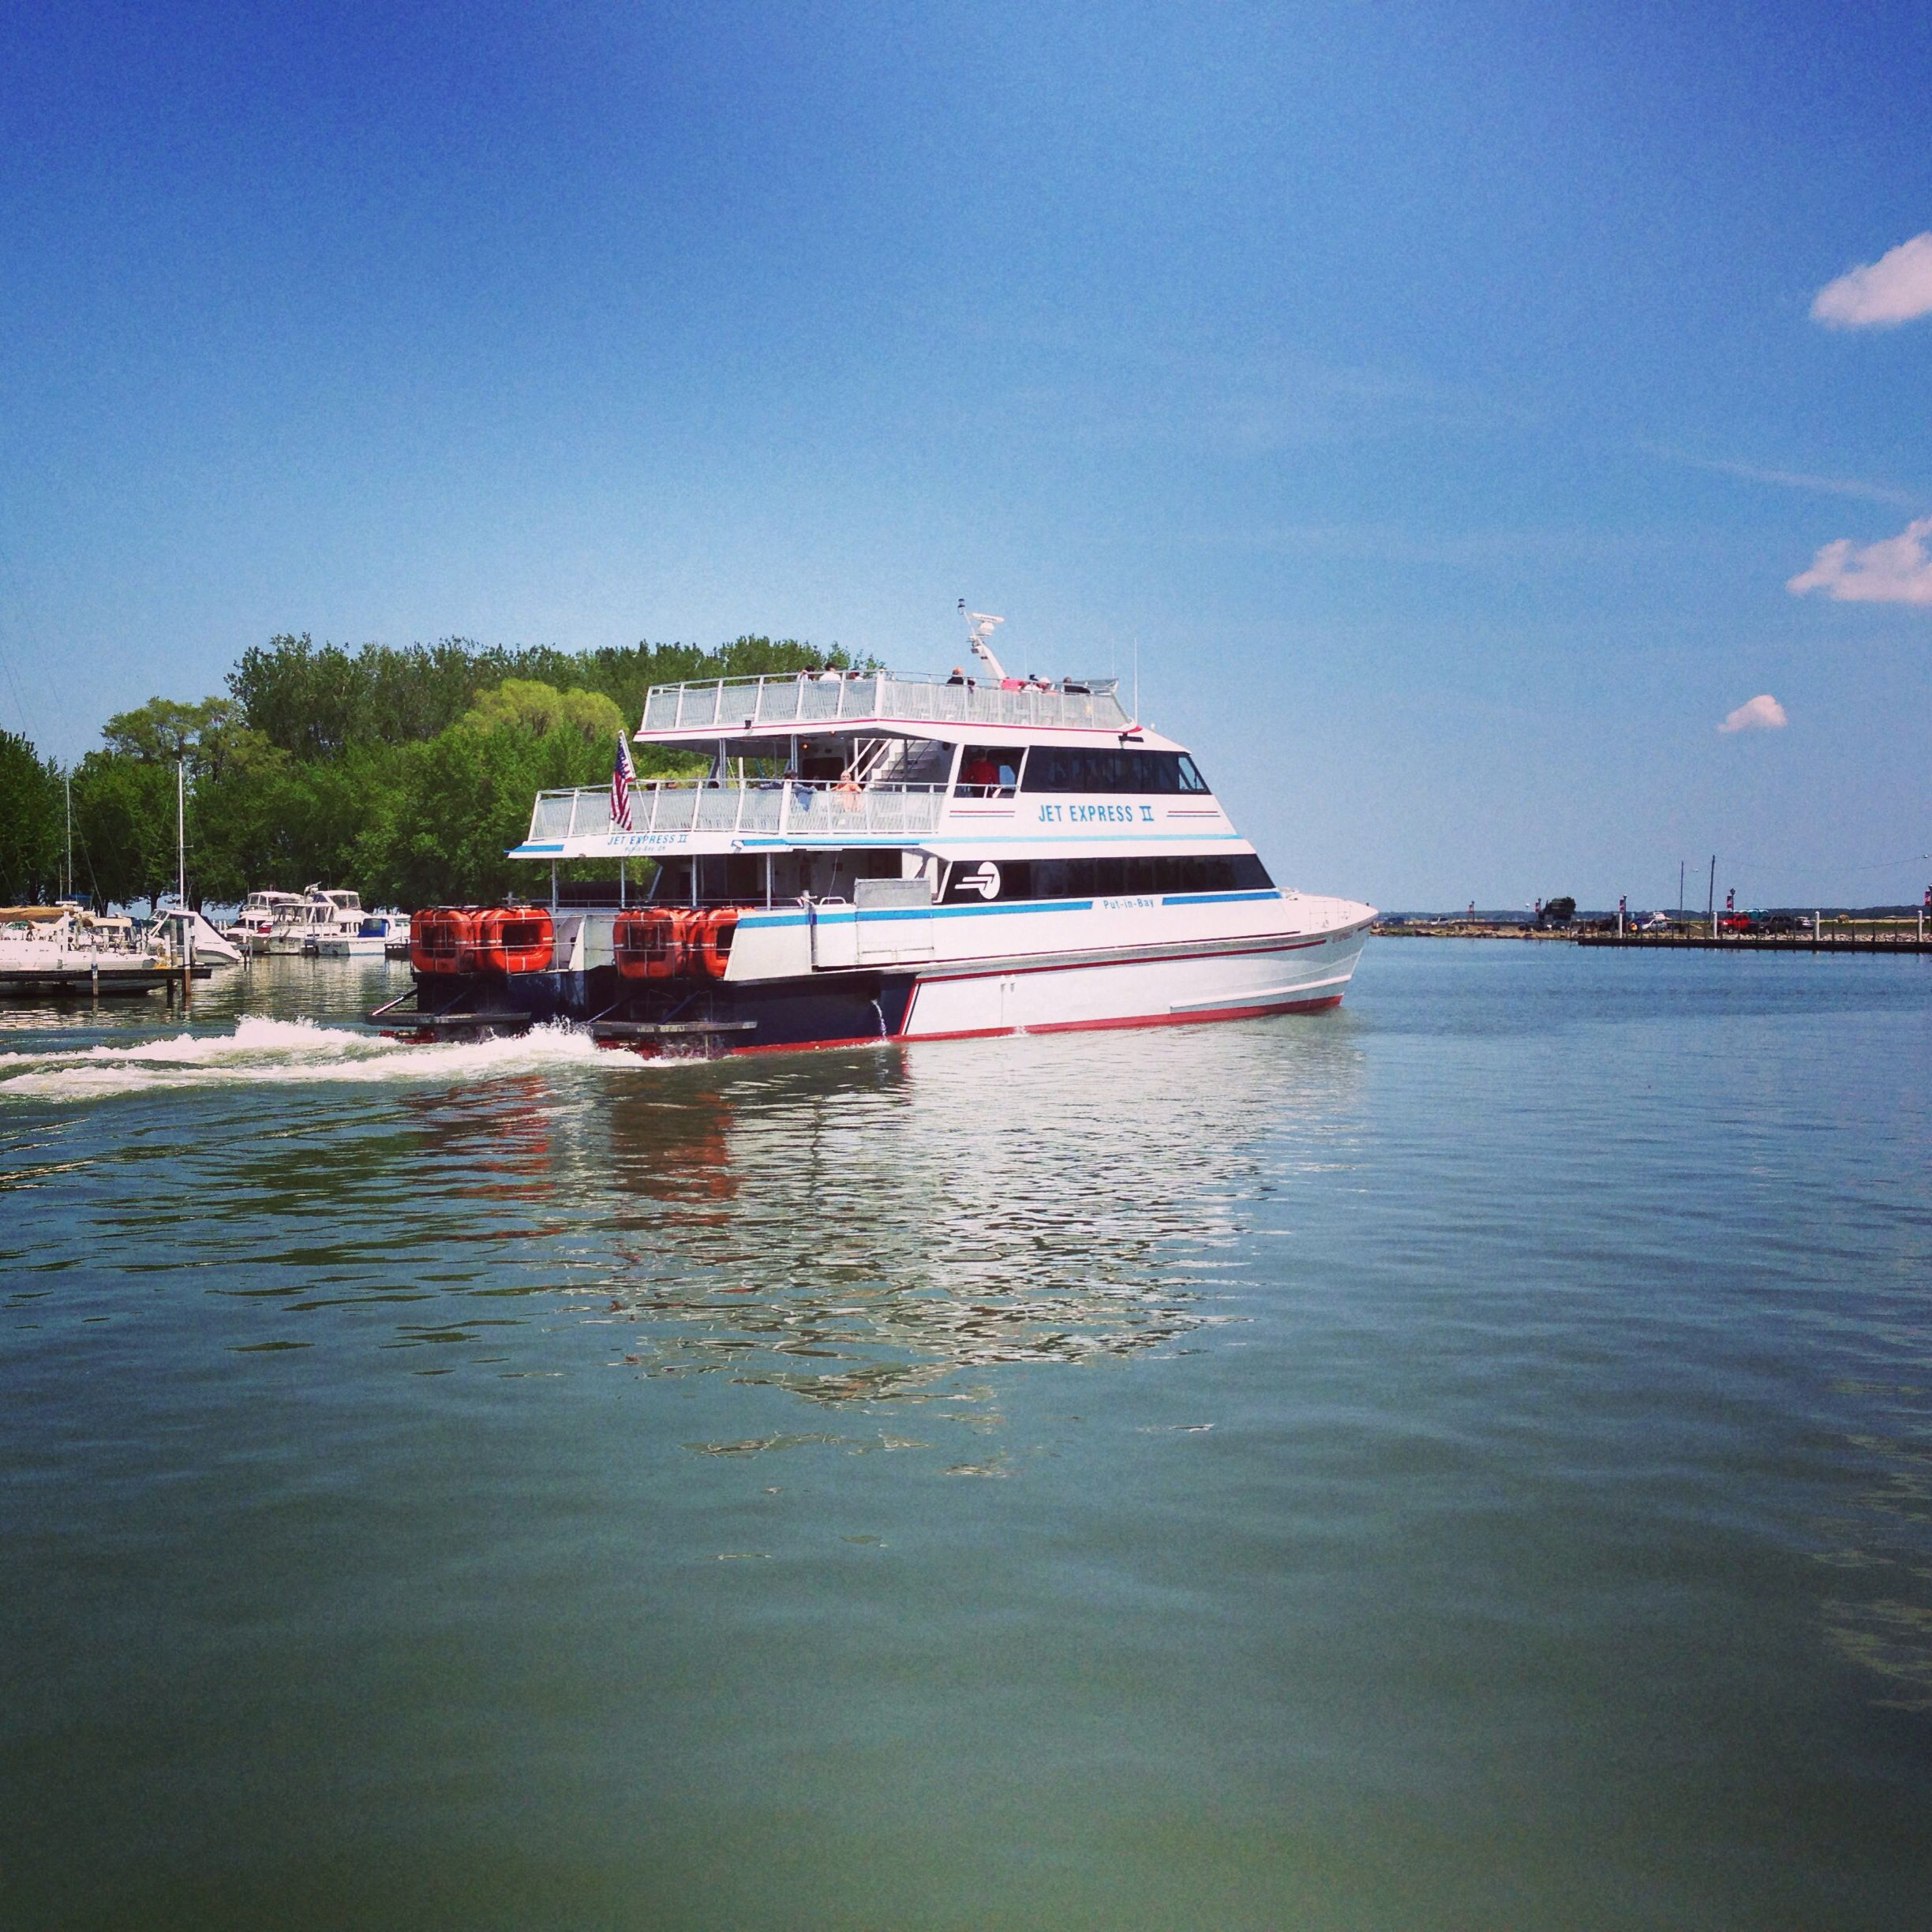 Jet Express leaving the Port Clinton dock | Play: Ferries | Lake